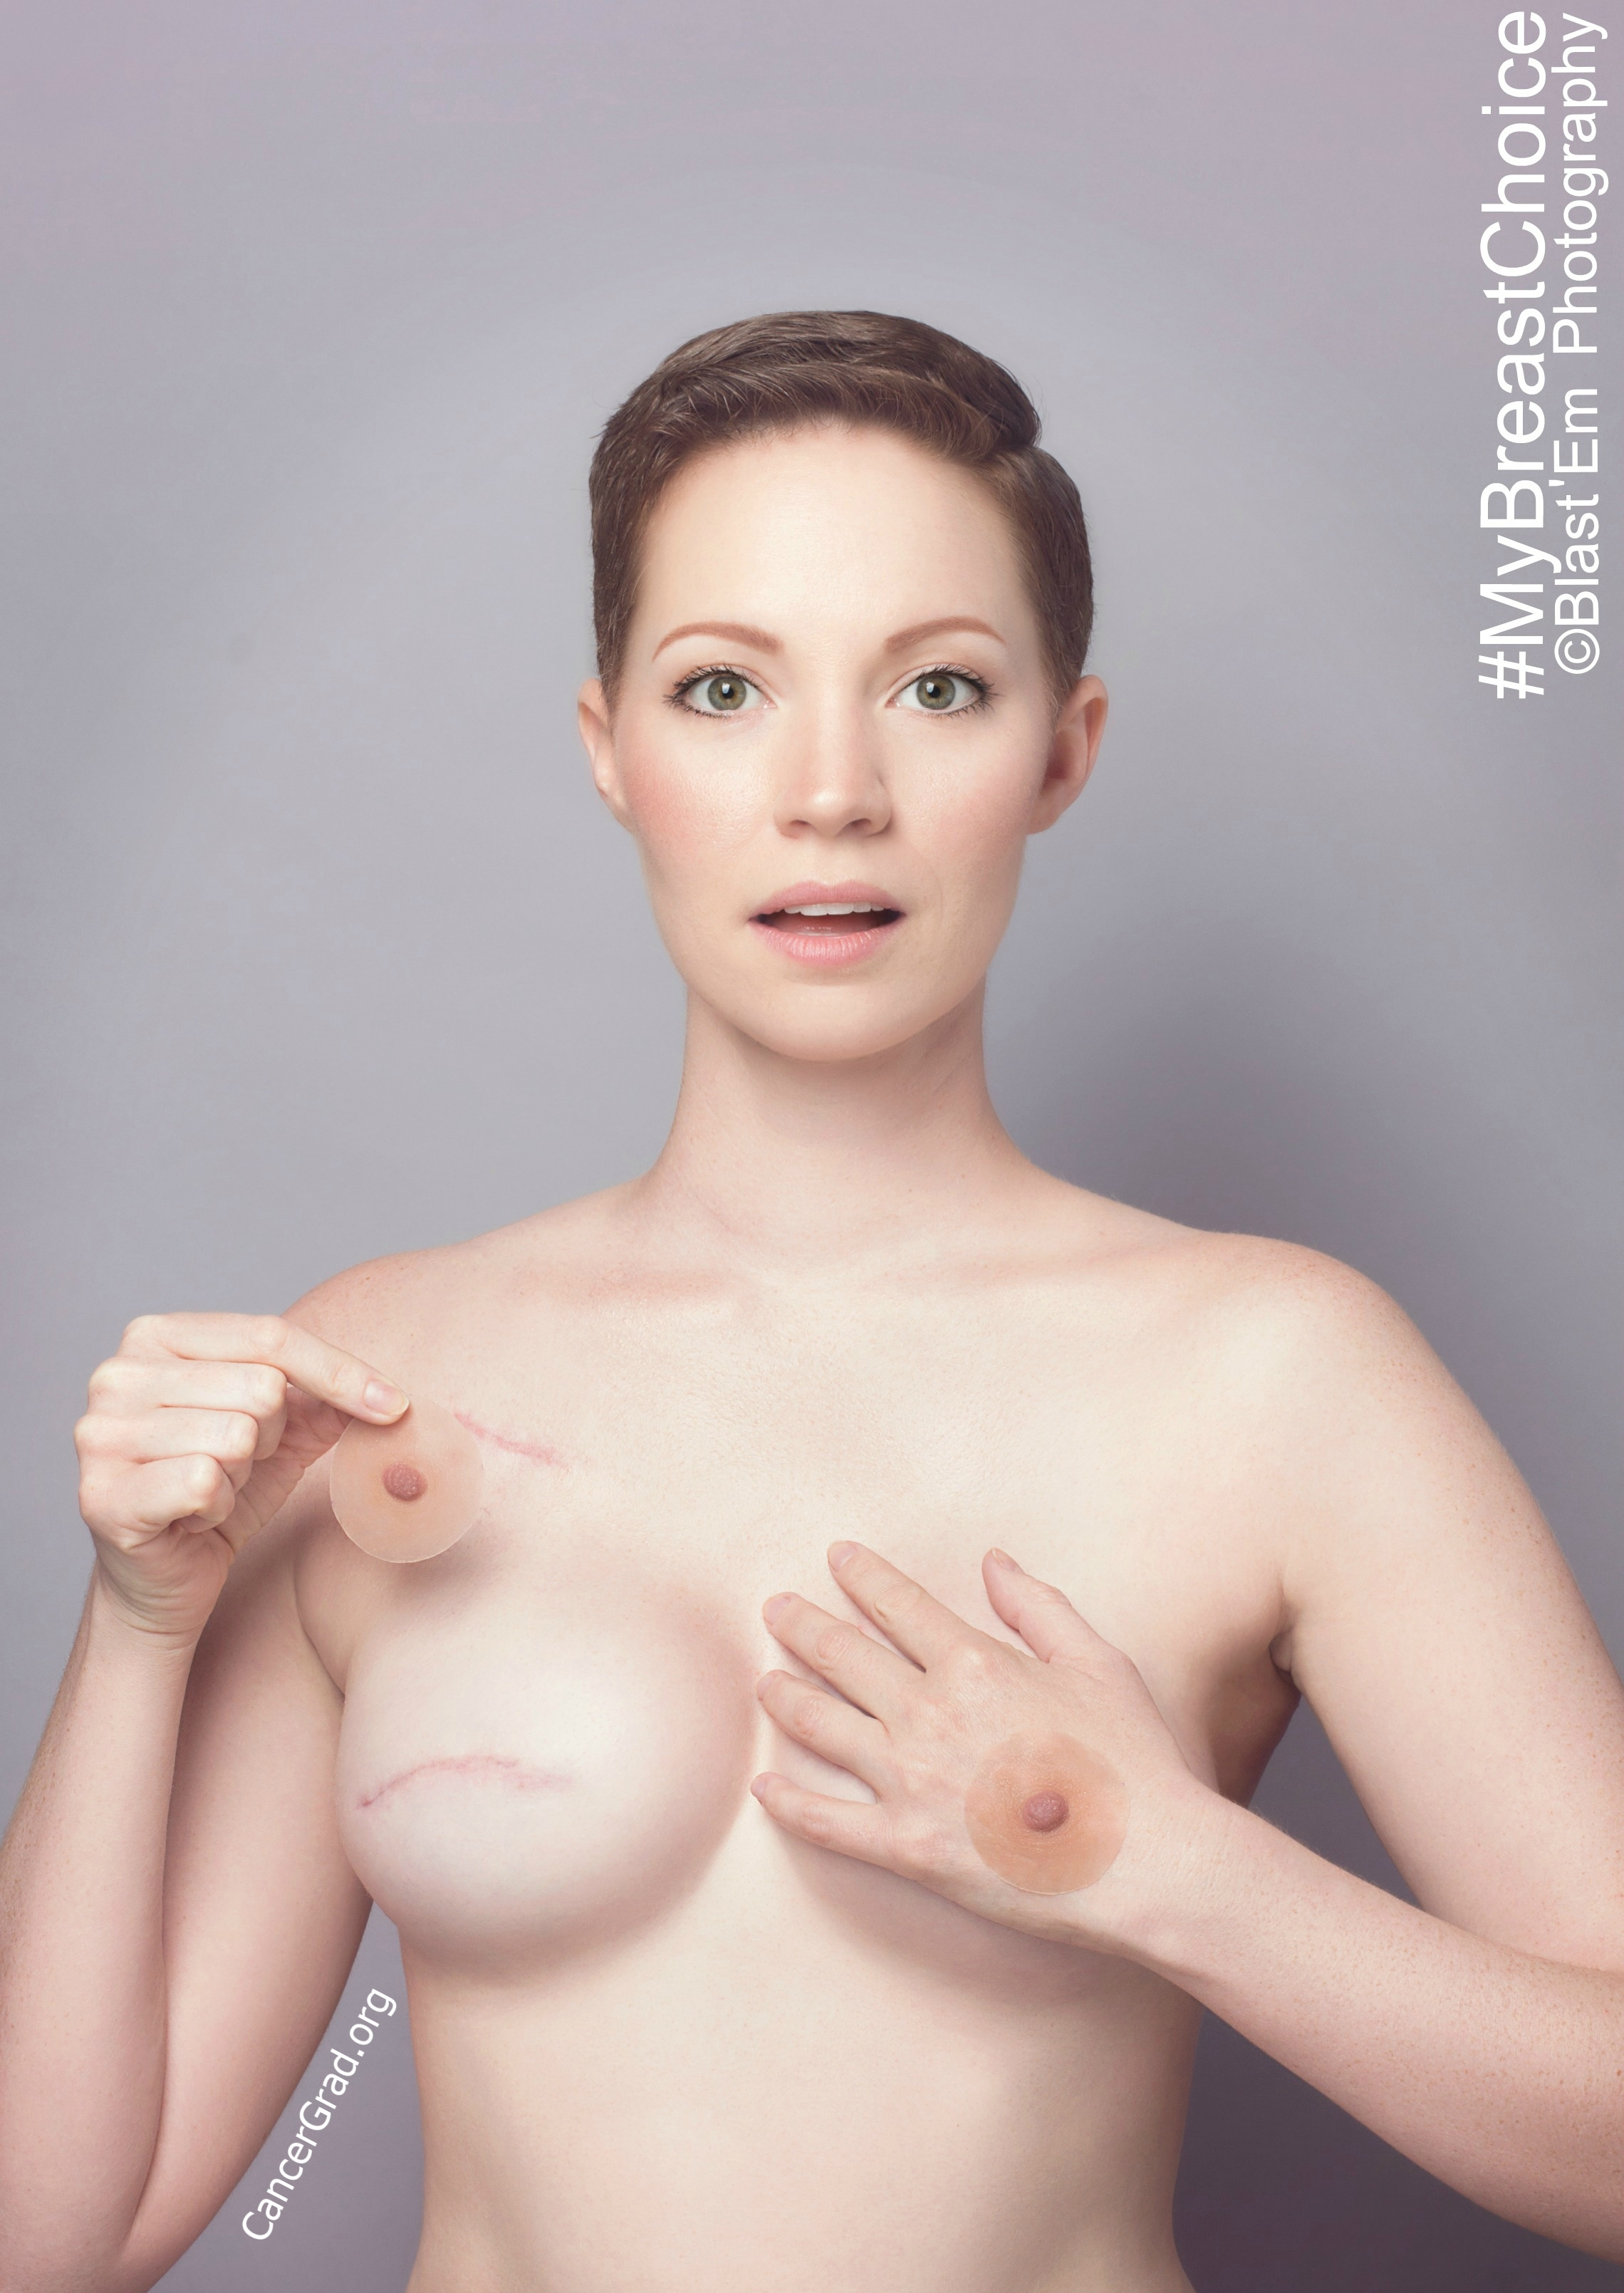 """""""#FreeTheNipples""""   Photographer- Blast 'Em    MUA & Hair- Aniela McGuinness      Model- Aniela McGuinness Prosthetic Nipples by Pink-Perfect  Five months post chemo and two months after my breast reconstruction."""